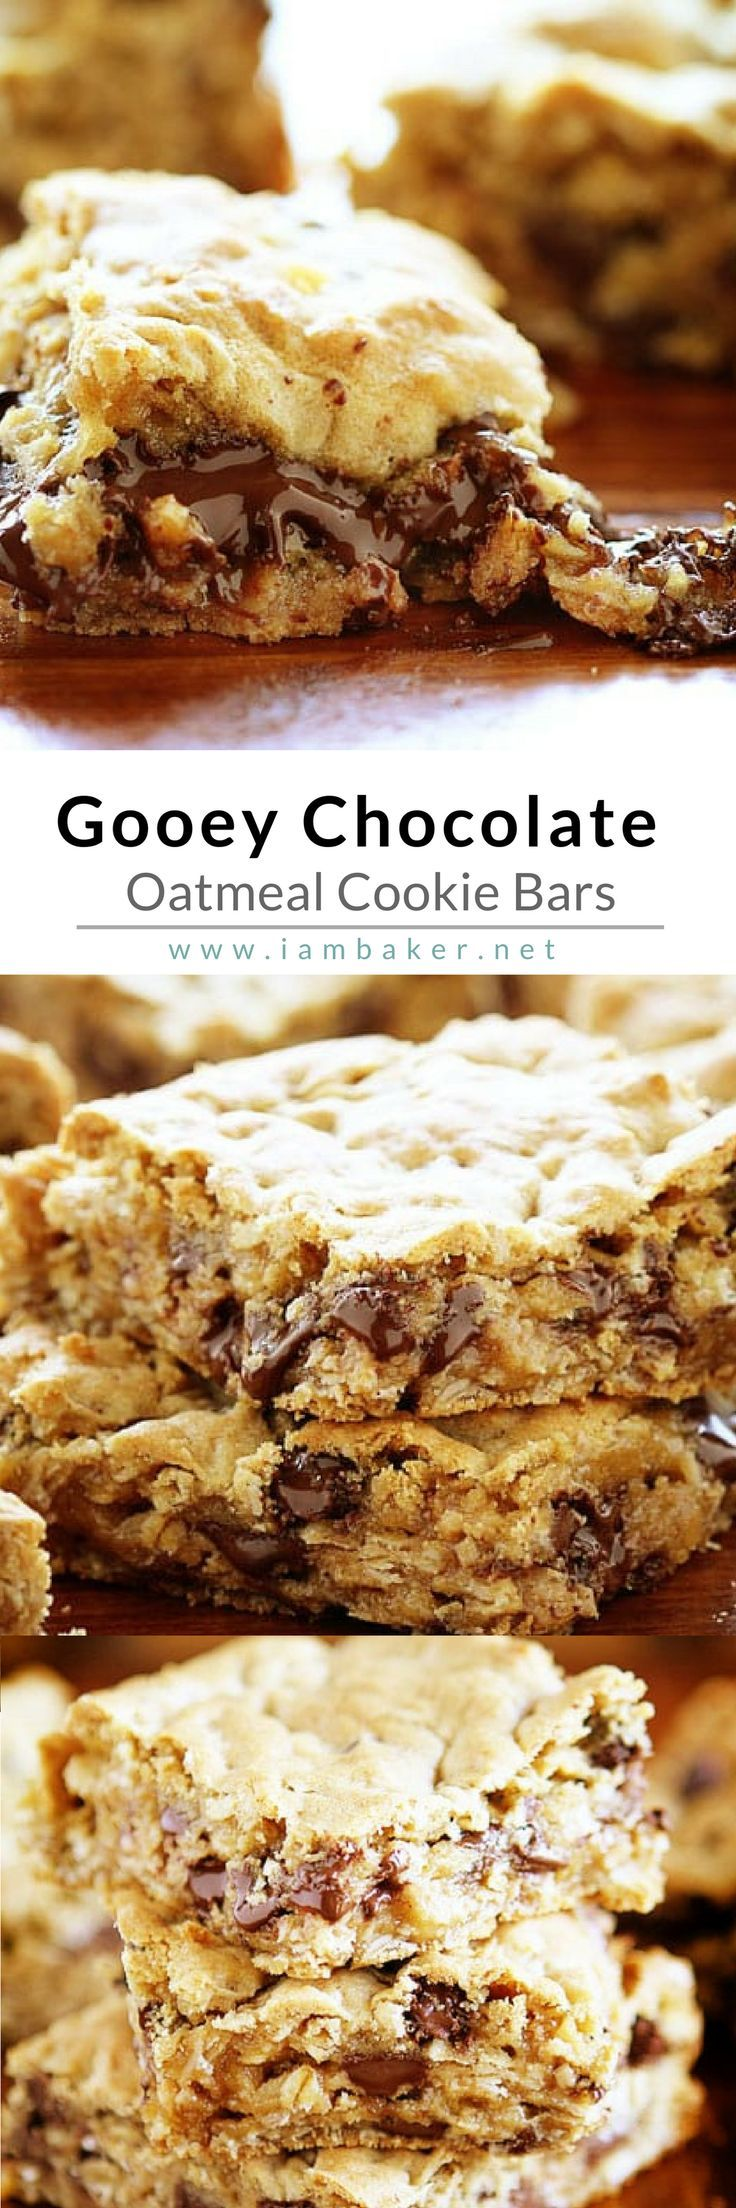 Chocolate Oatmeal Cookies Bars - Let your family dig in to this delicious and perfect-from-the-oven Chocolate Oatmeal Bar! This easy dessert recipe is so ooey-gooey this will be one of the best things you will do today! You can add raisins or walnuts or white chocolate…  even caramel or toffee to fit your taste! For more simple and easy dessert recipes to make, check us out at #iambaker. #yummyfood #desserts #yummydesserts #recipeoftheday